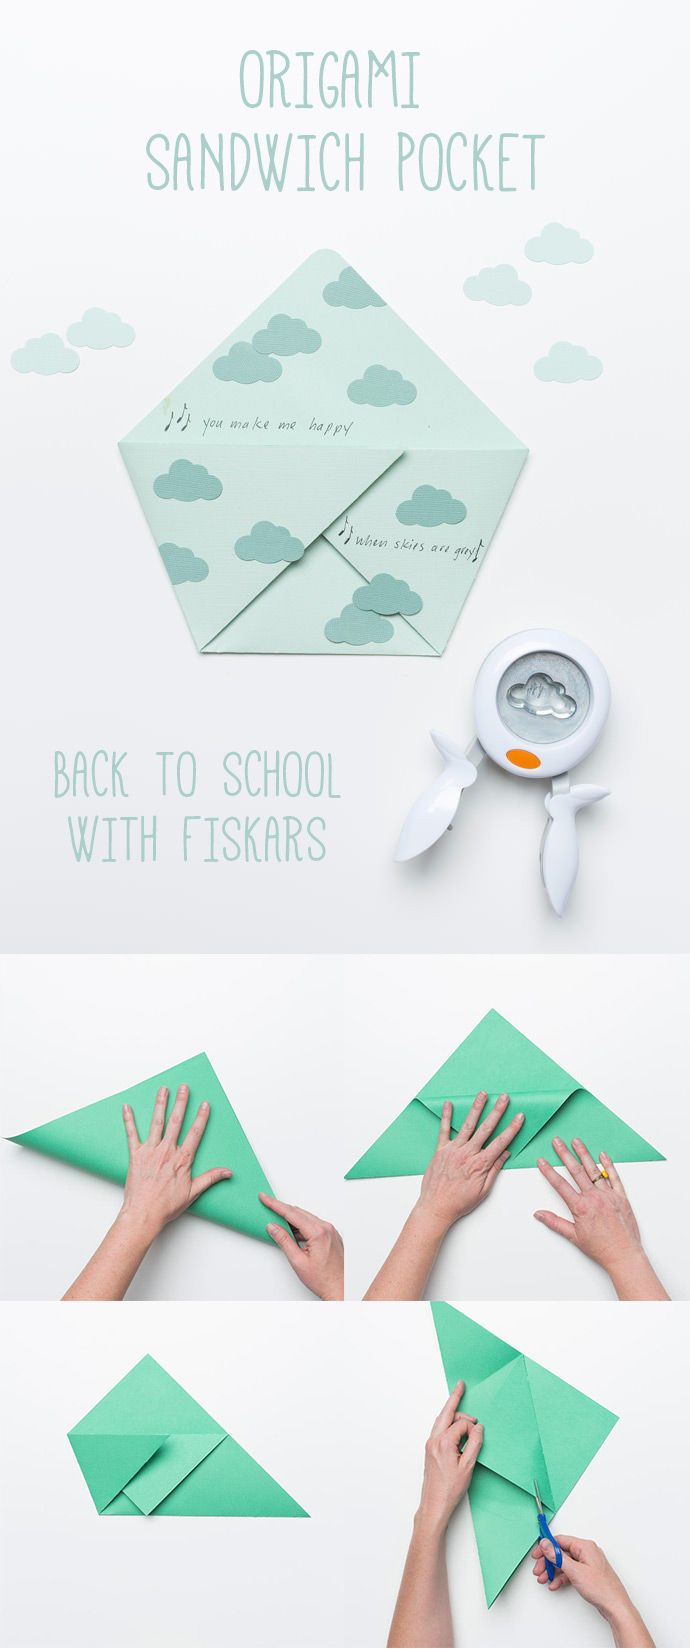 Origami Sandwich Pockets for Back to School